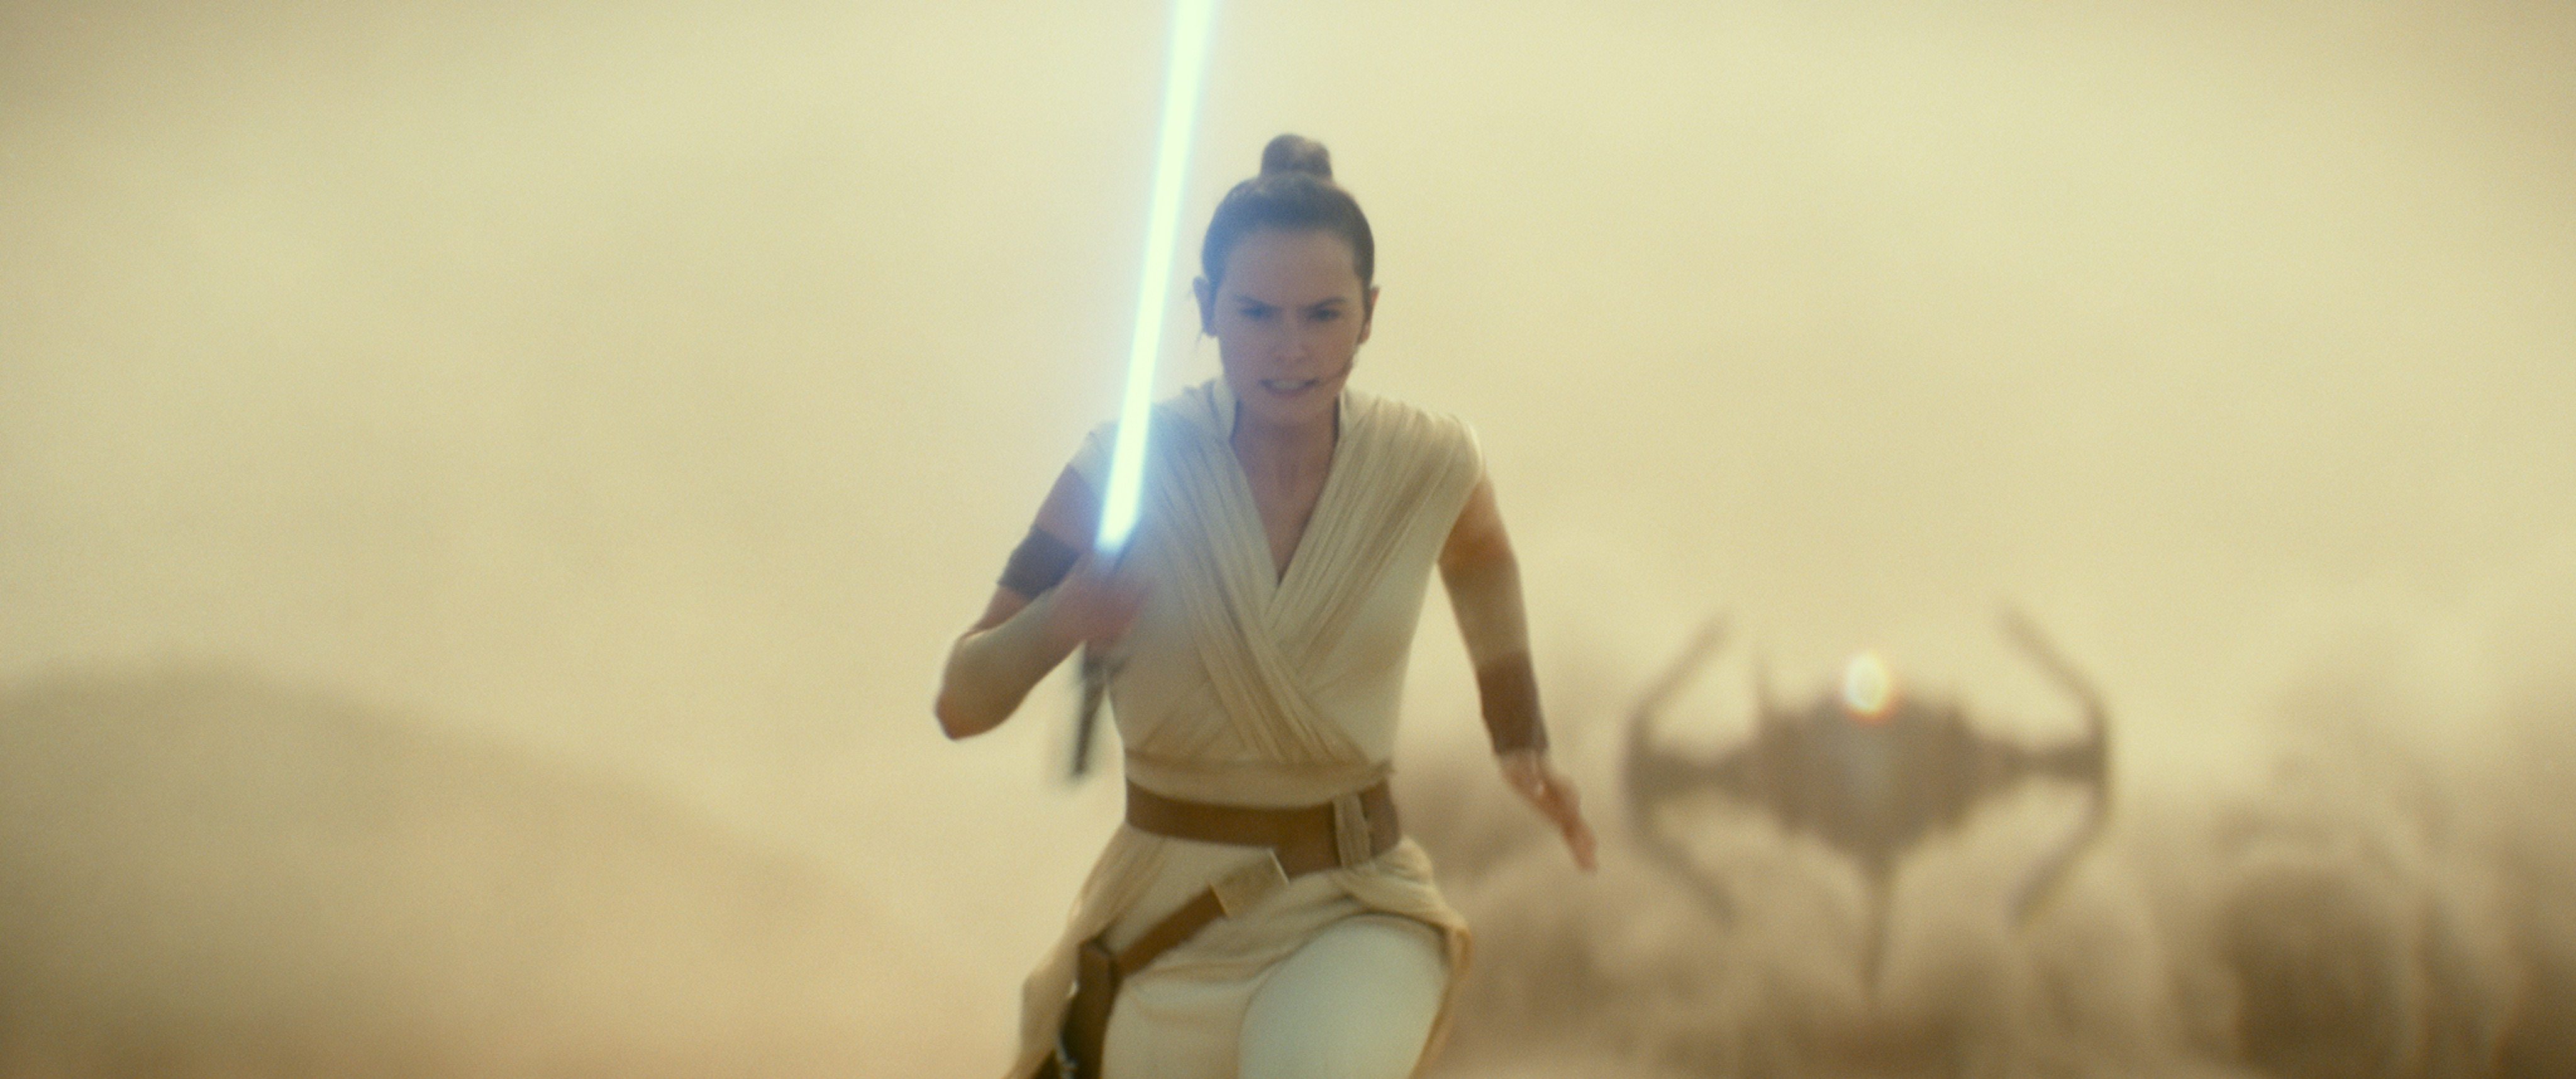 Star Wars The Rise Of Skywalker Changes The Sequel Trilogy S Message